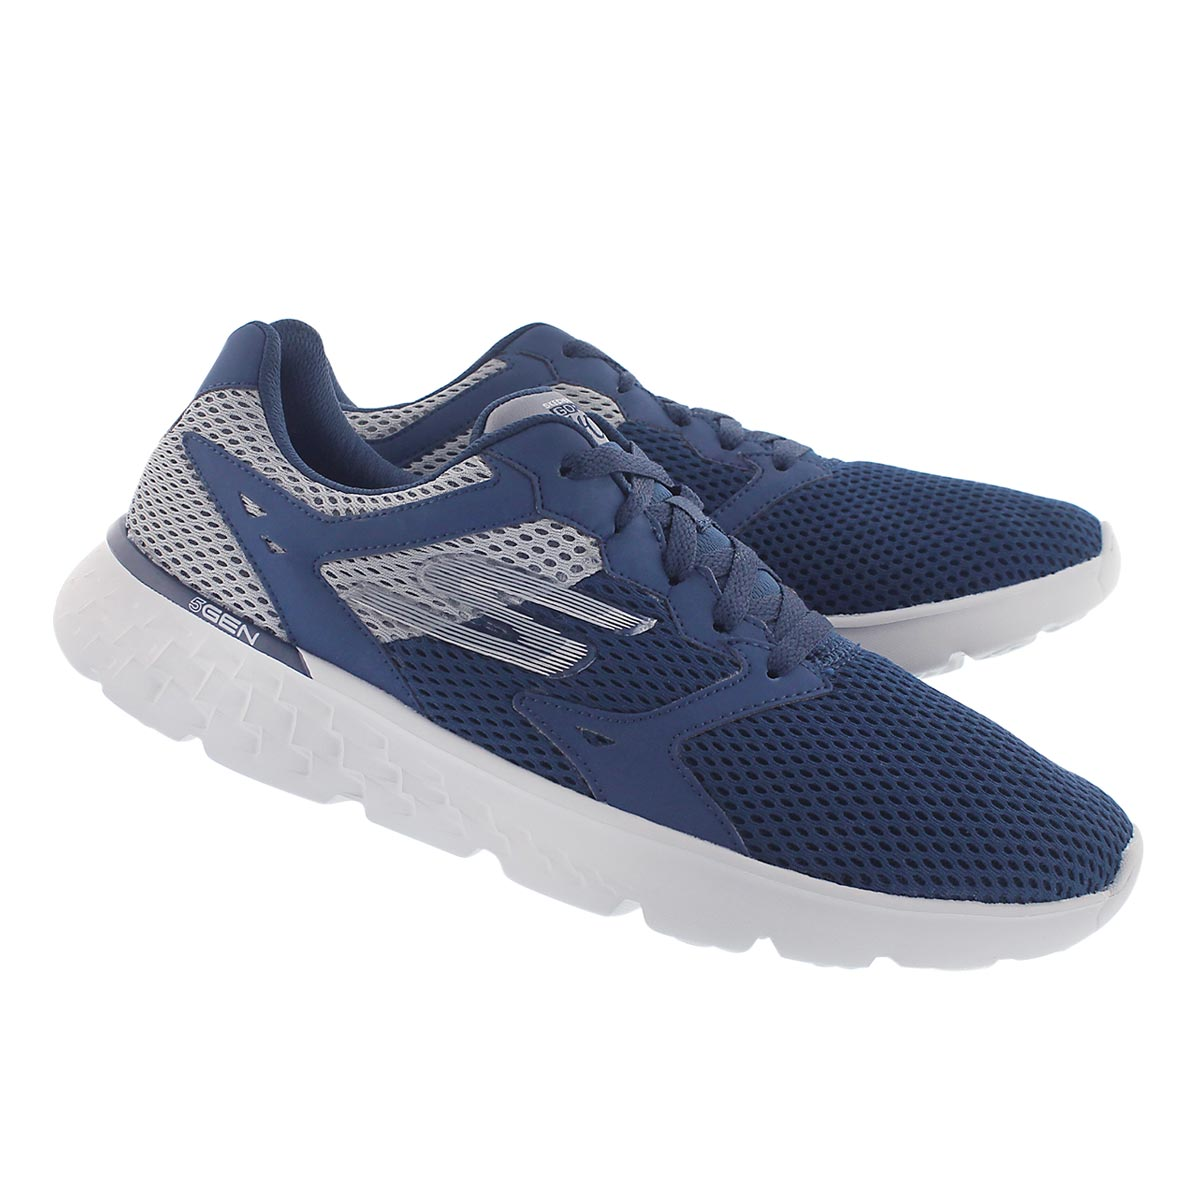 Mns GO Run 400 navy lace up running shoe